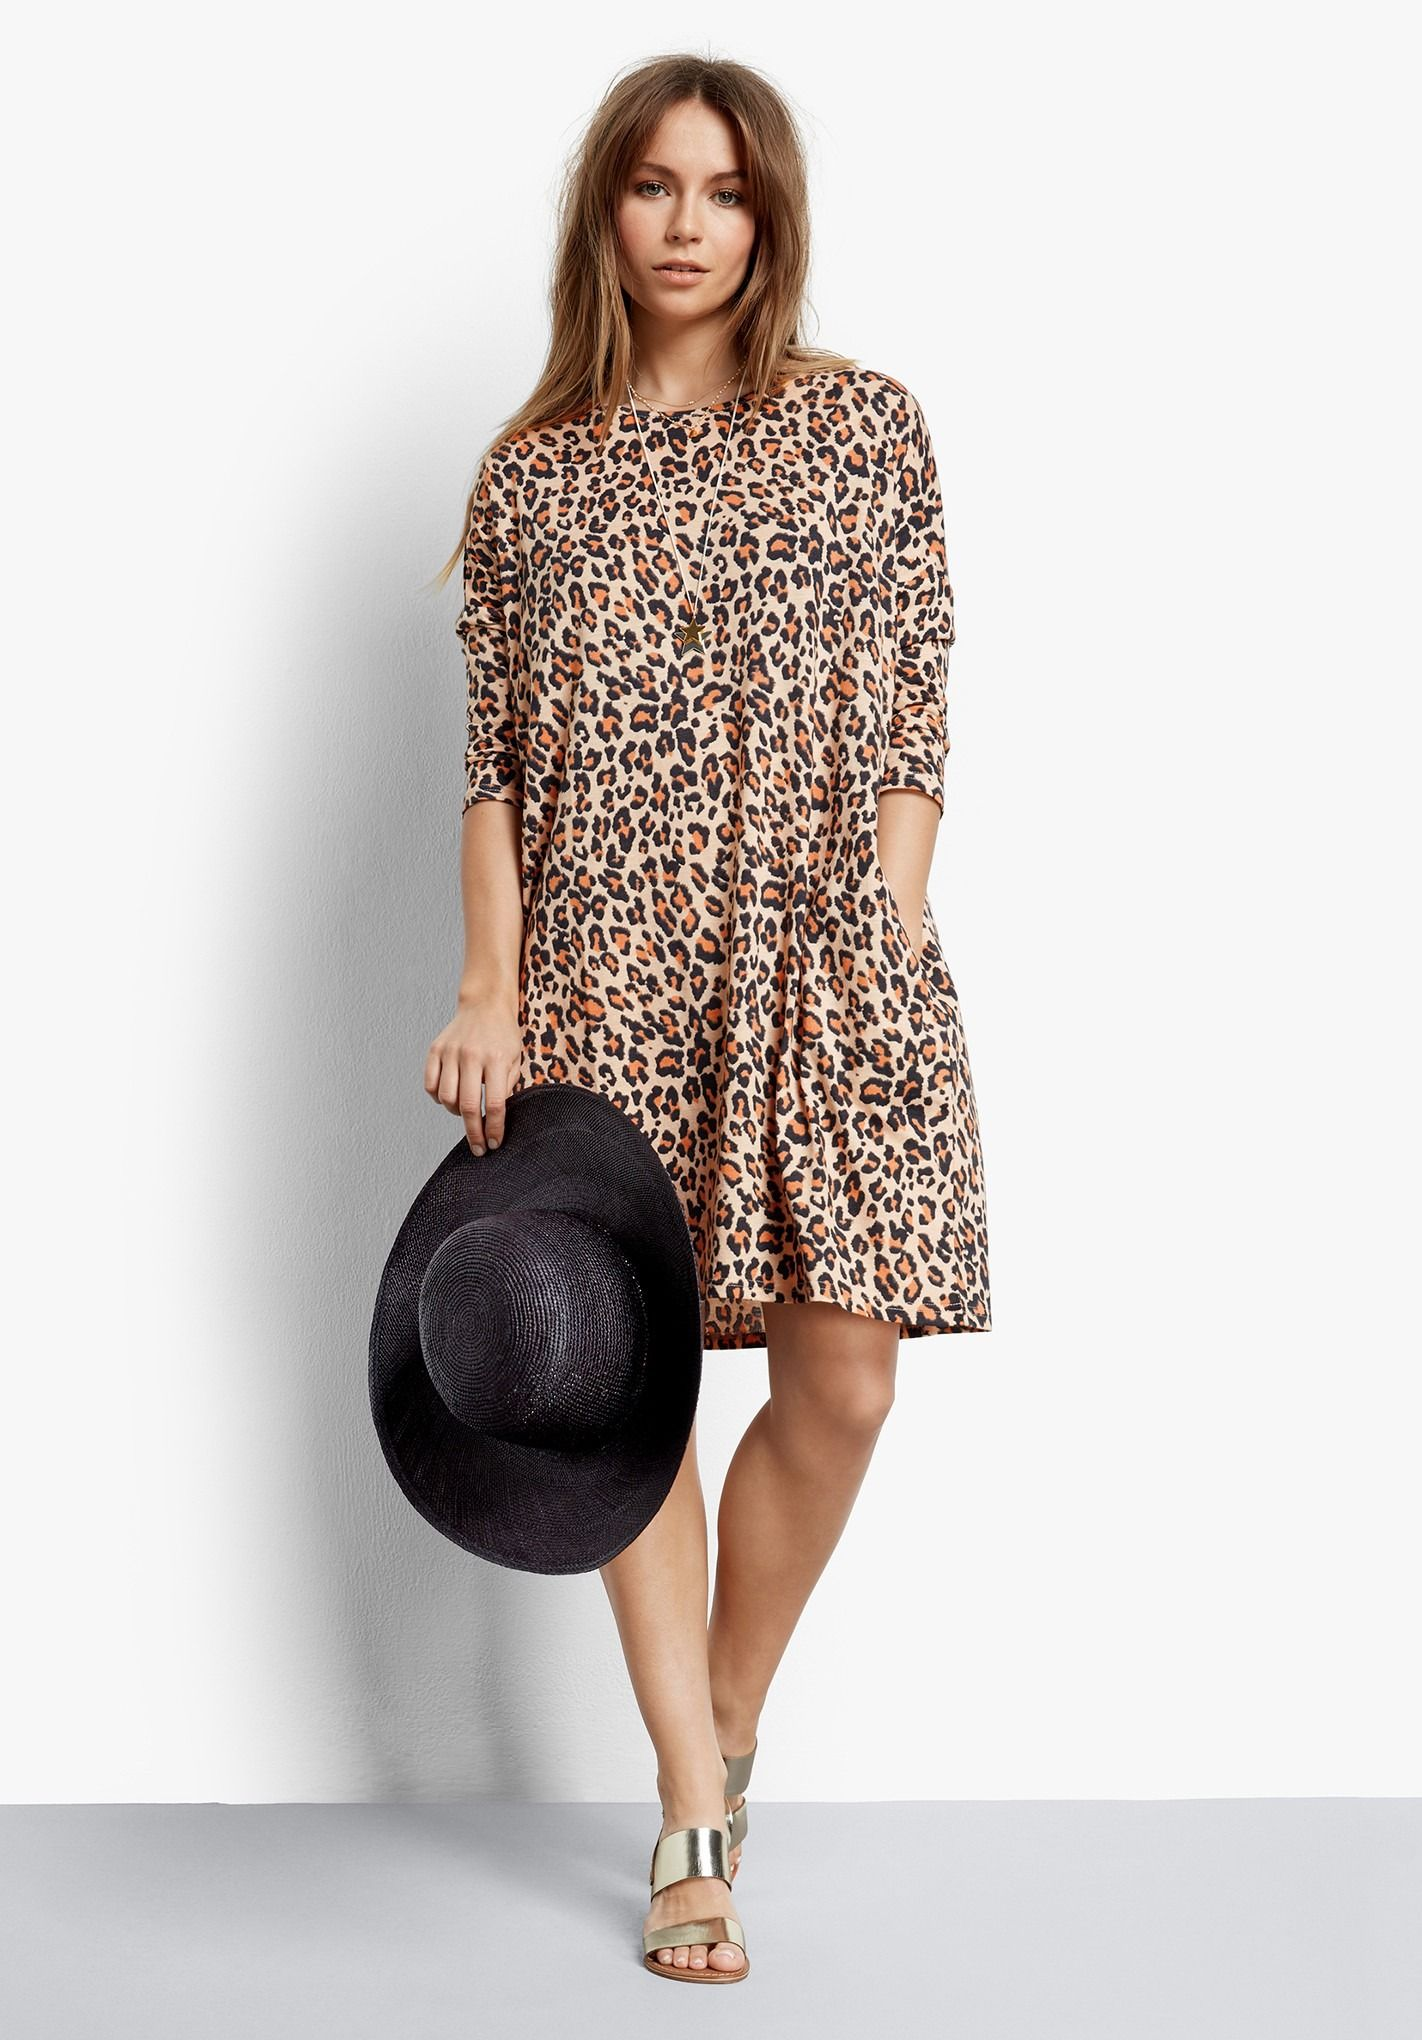 8607b0abc A modern take on the T shirt dress, in eye-catching leopard print, the  oversized style creates a cocoon shape that's on-trend and so easy to wear.